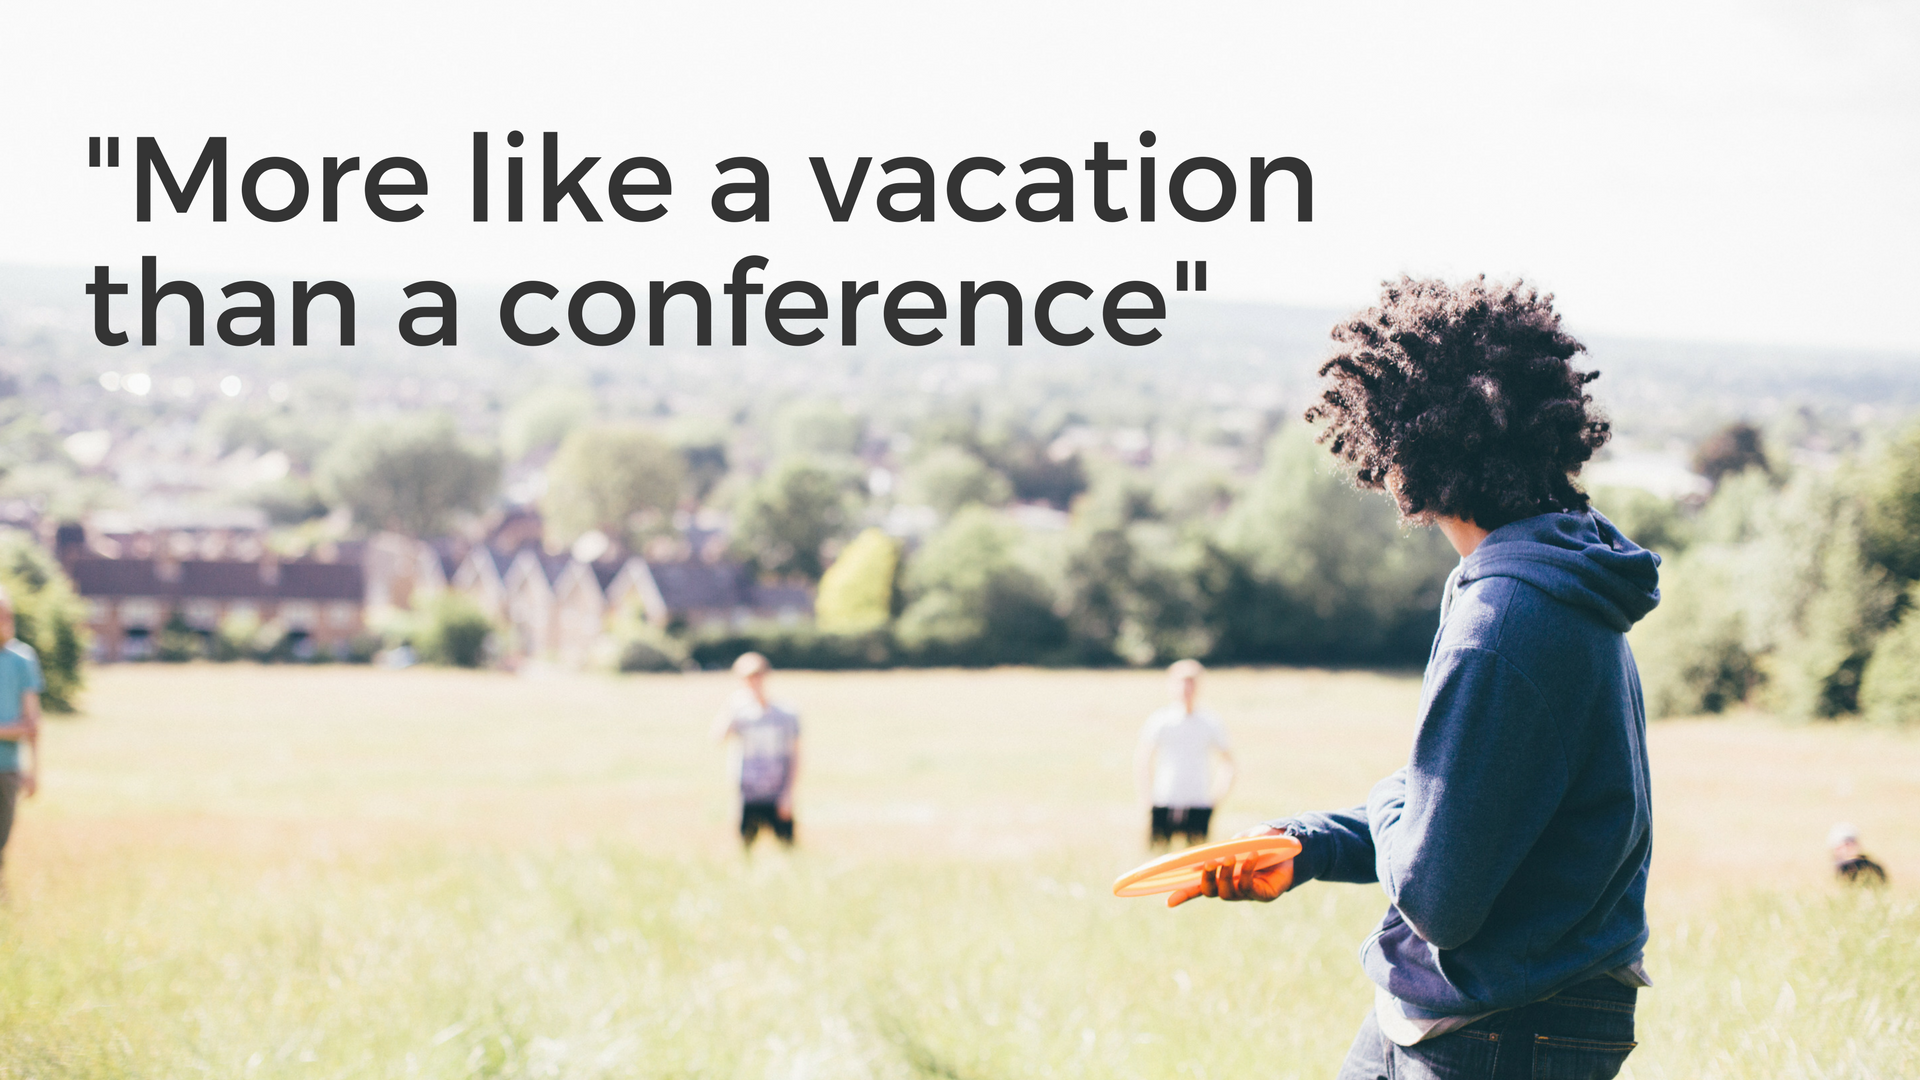 More like a vacation than a conference.